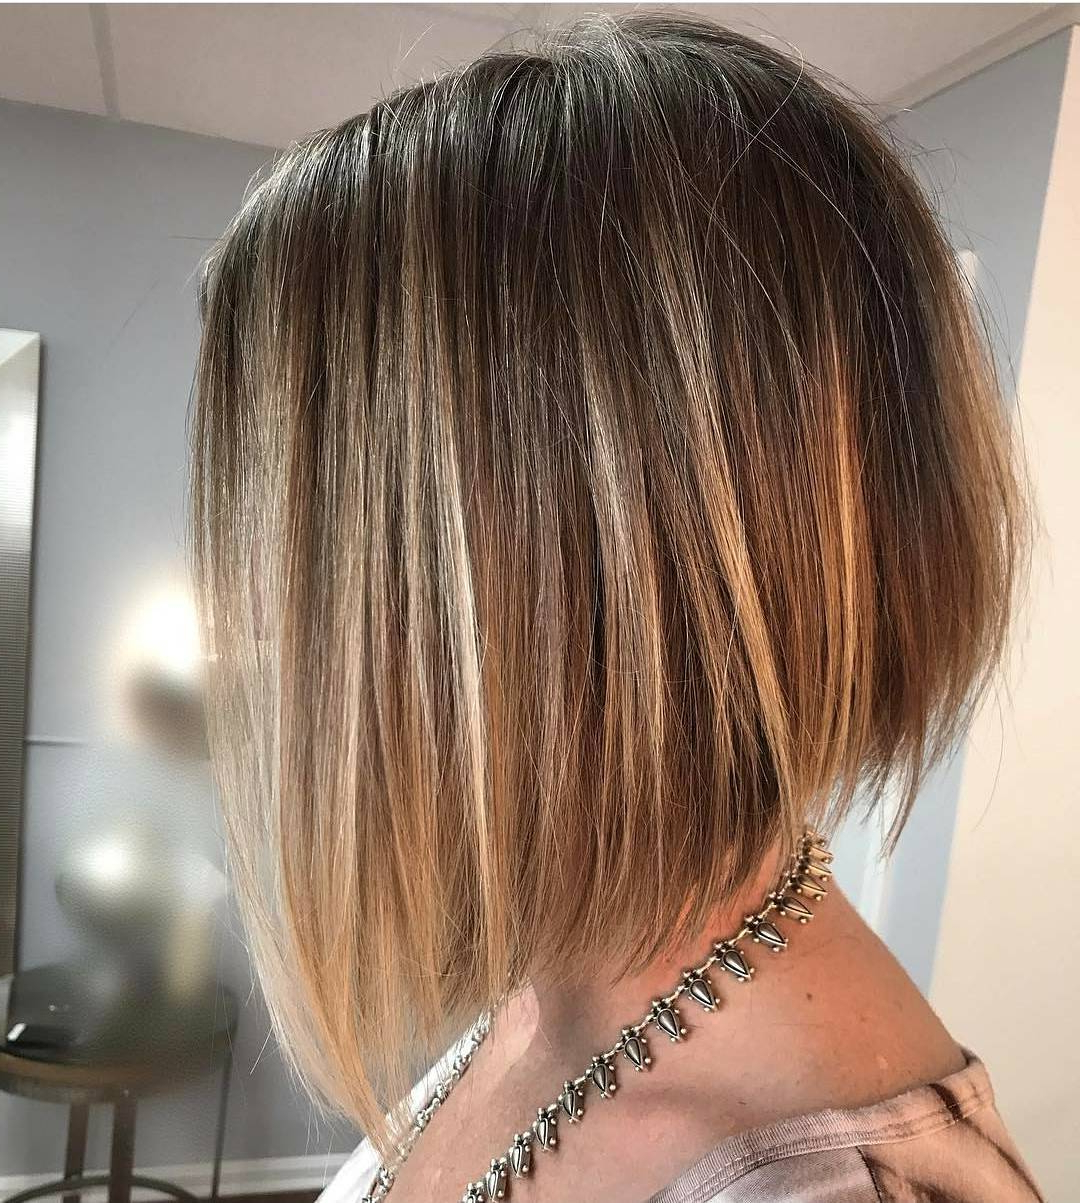 10 Flattering Short Straight Hairstyles 2019 Intended For Stacked Copper Balayage Bob Hairstyles (View 3 of 20)